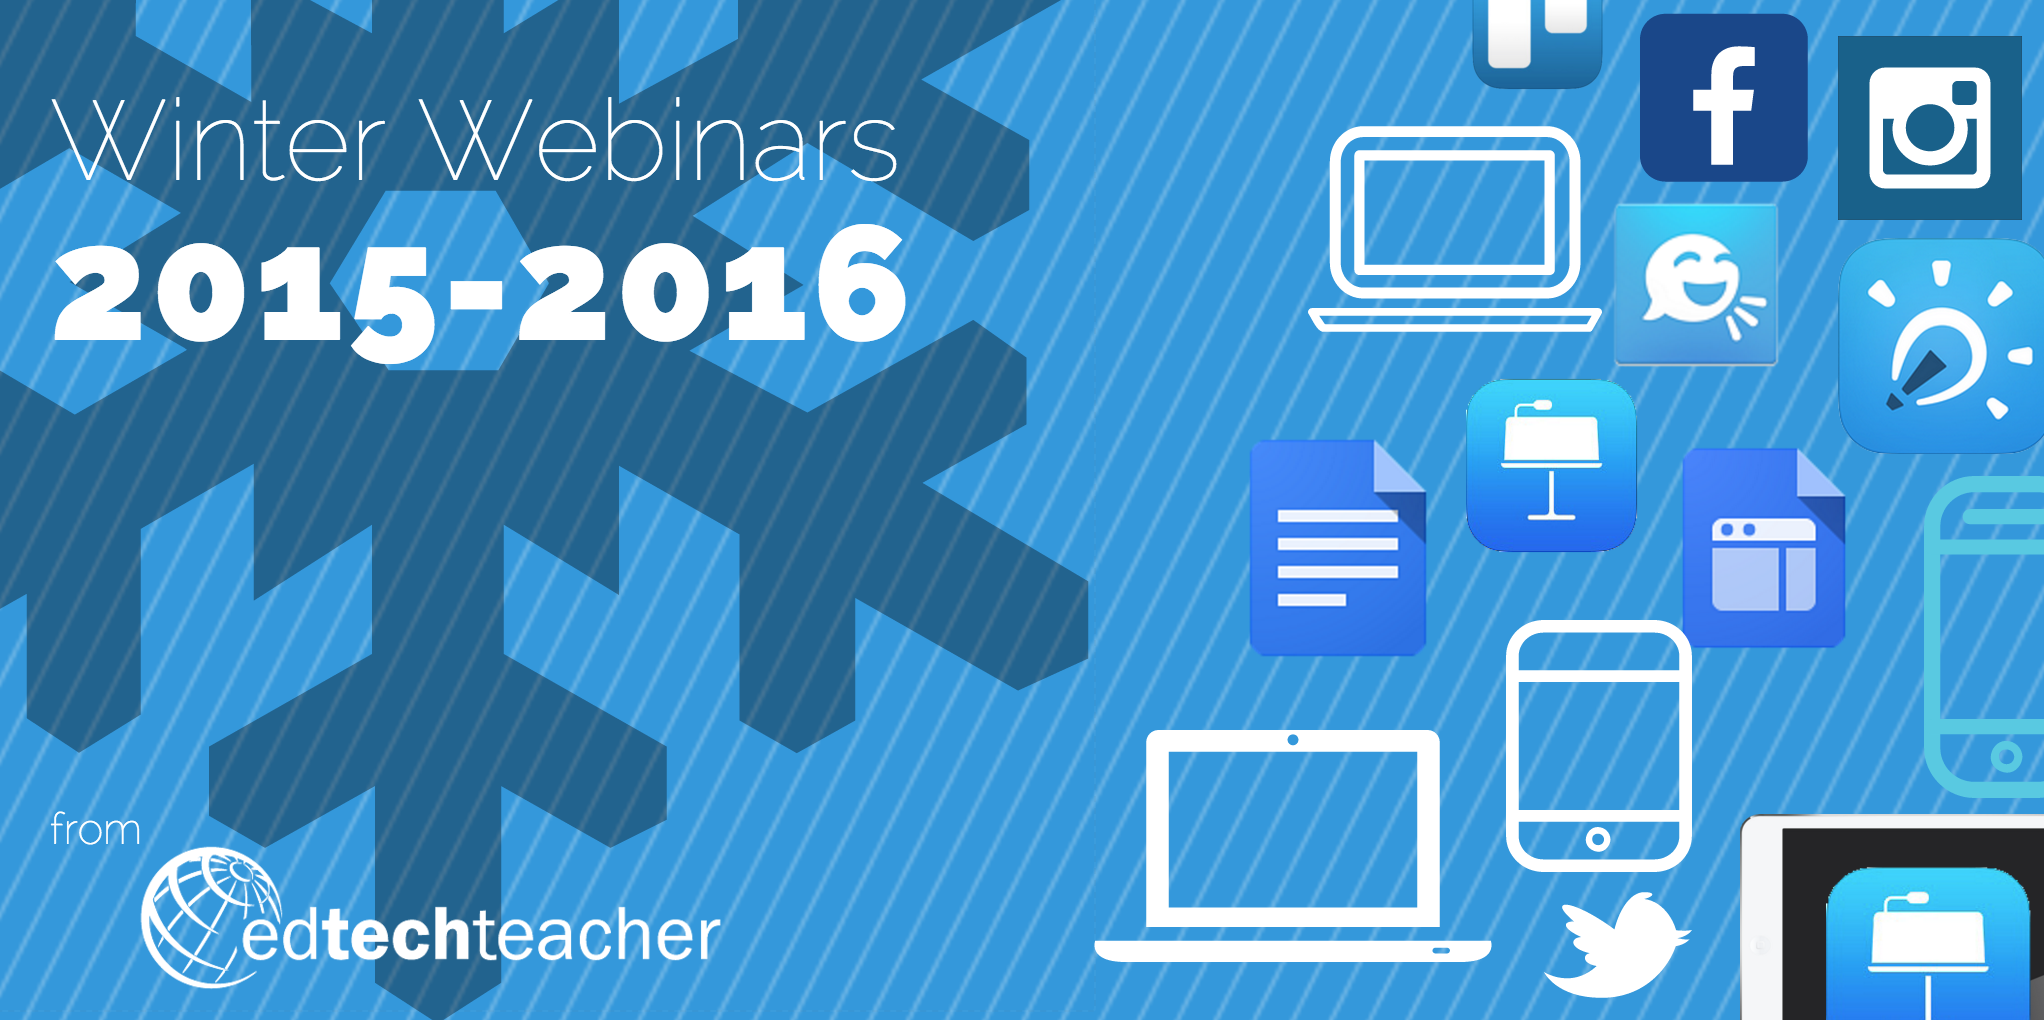 Winter Webinars